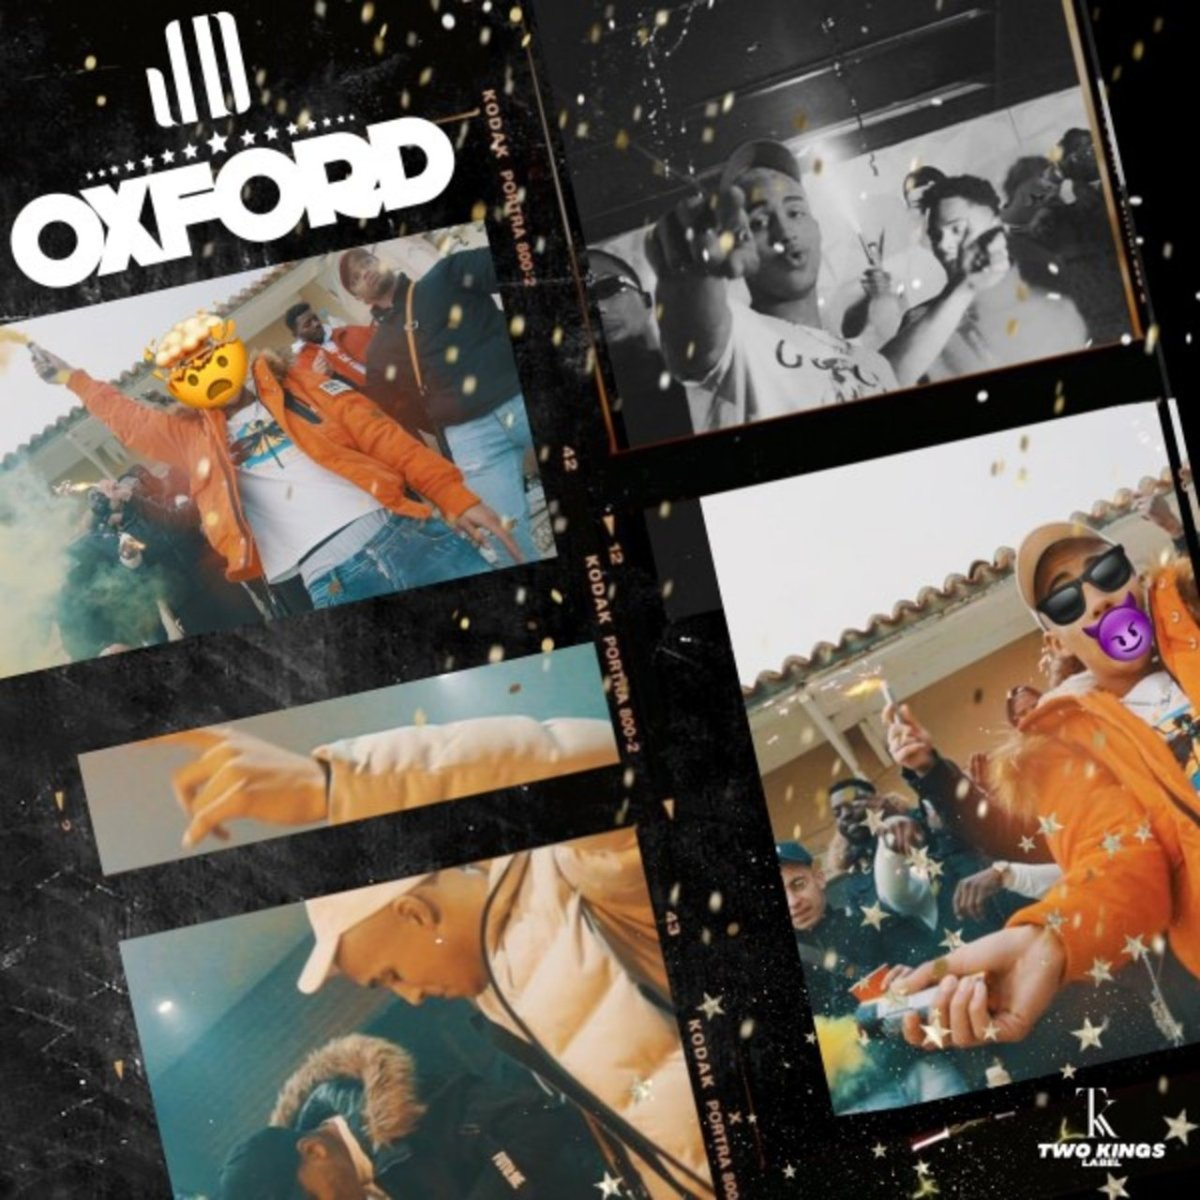 JD - Oxford (Cover)